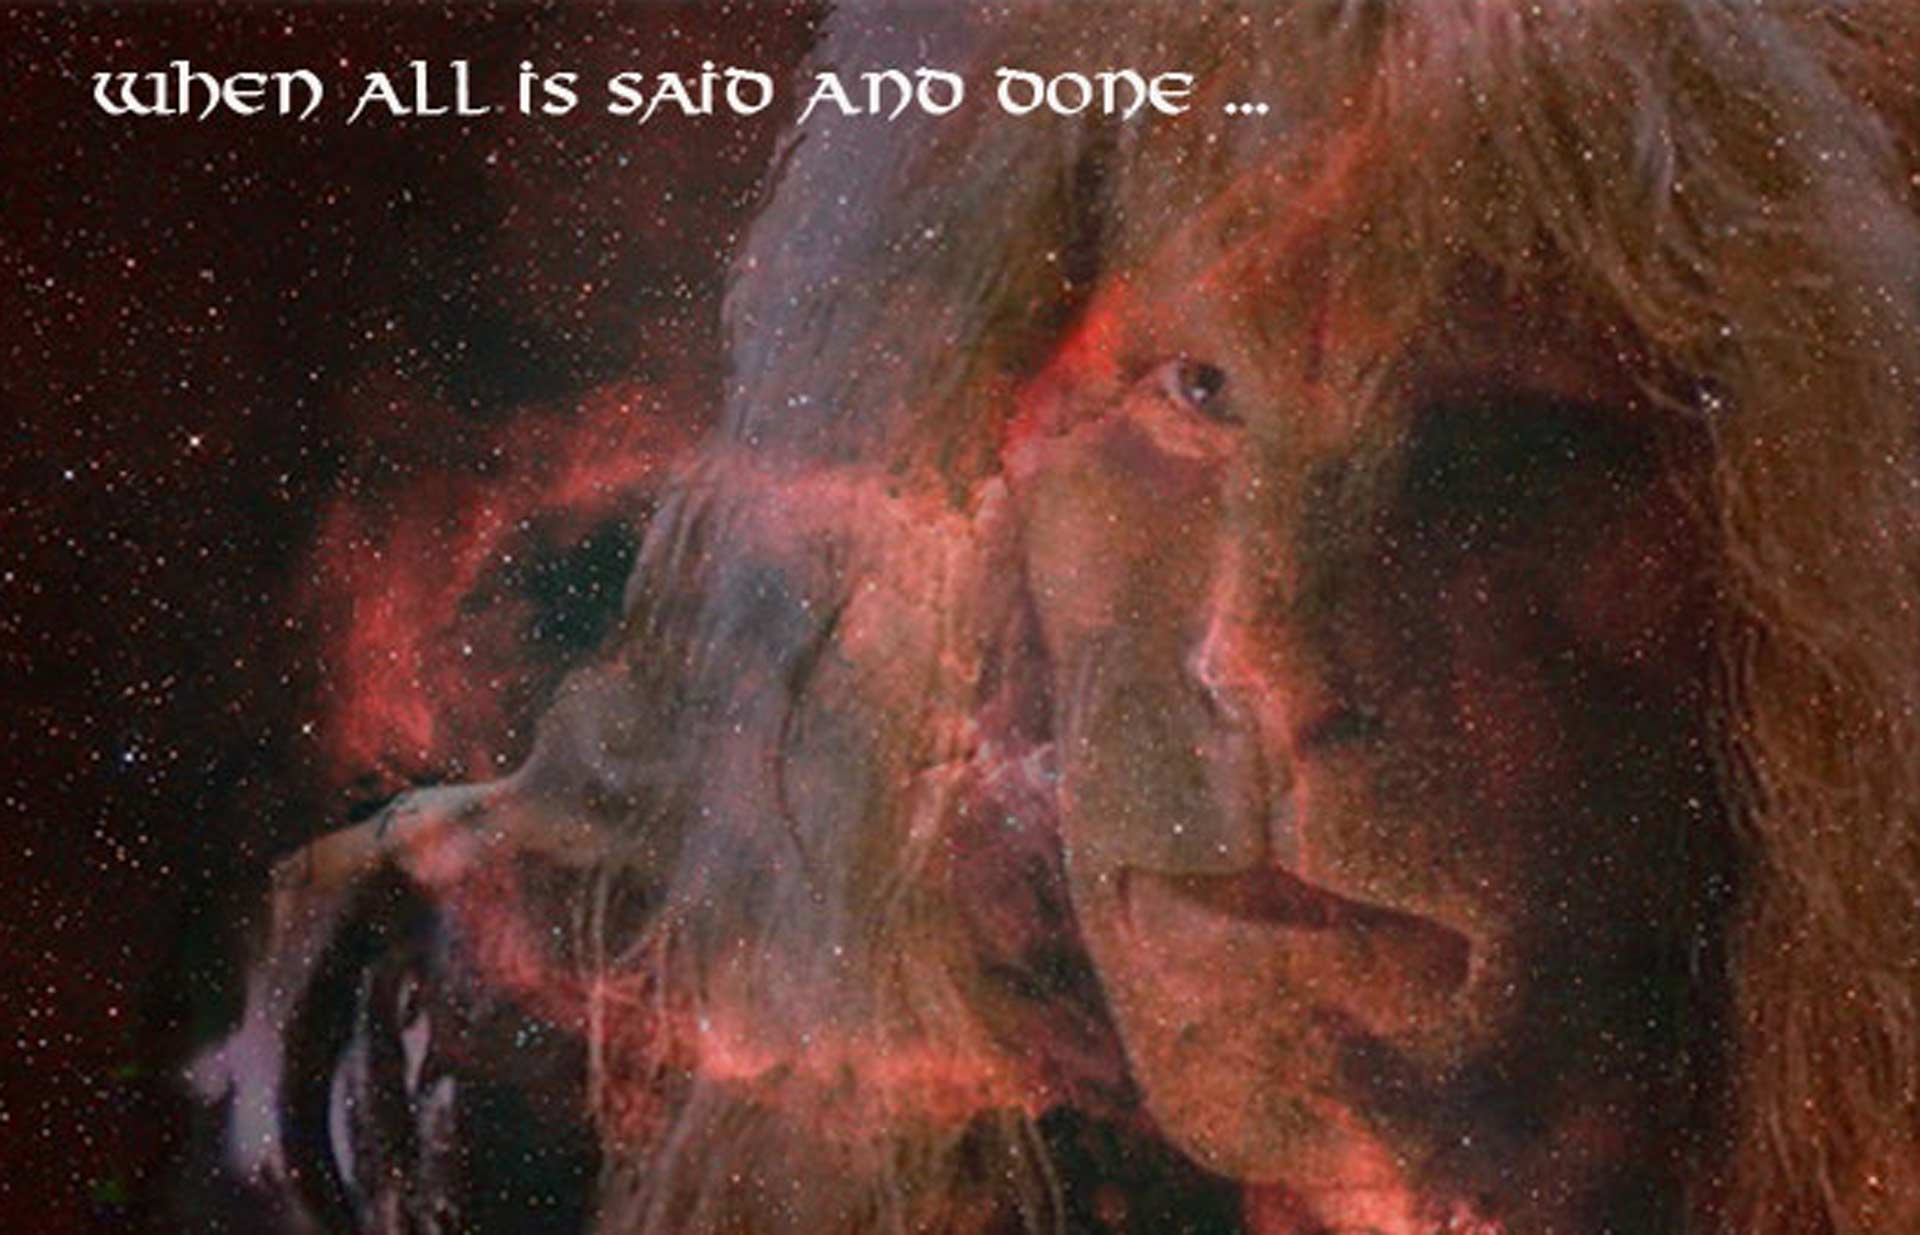 The Light from the Heart nebula in the background, Vincent gazing pensively into the distance. Text reads: When all is said and done ...